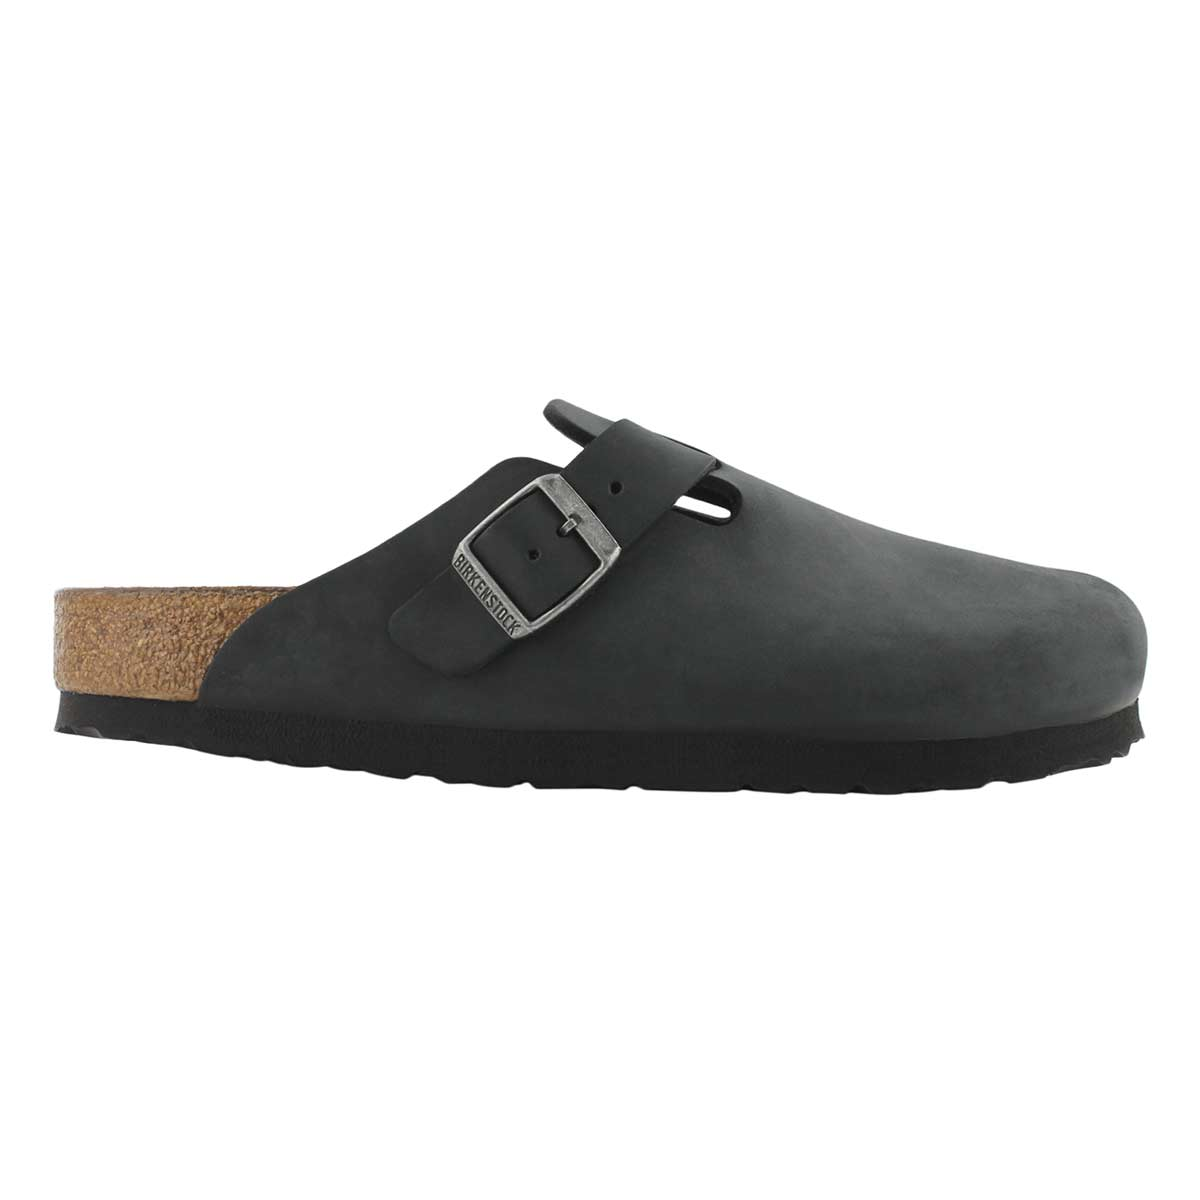 Lds Boston black oiled casual clog